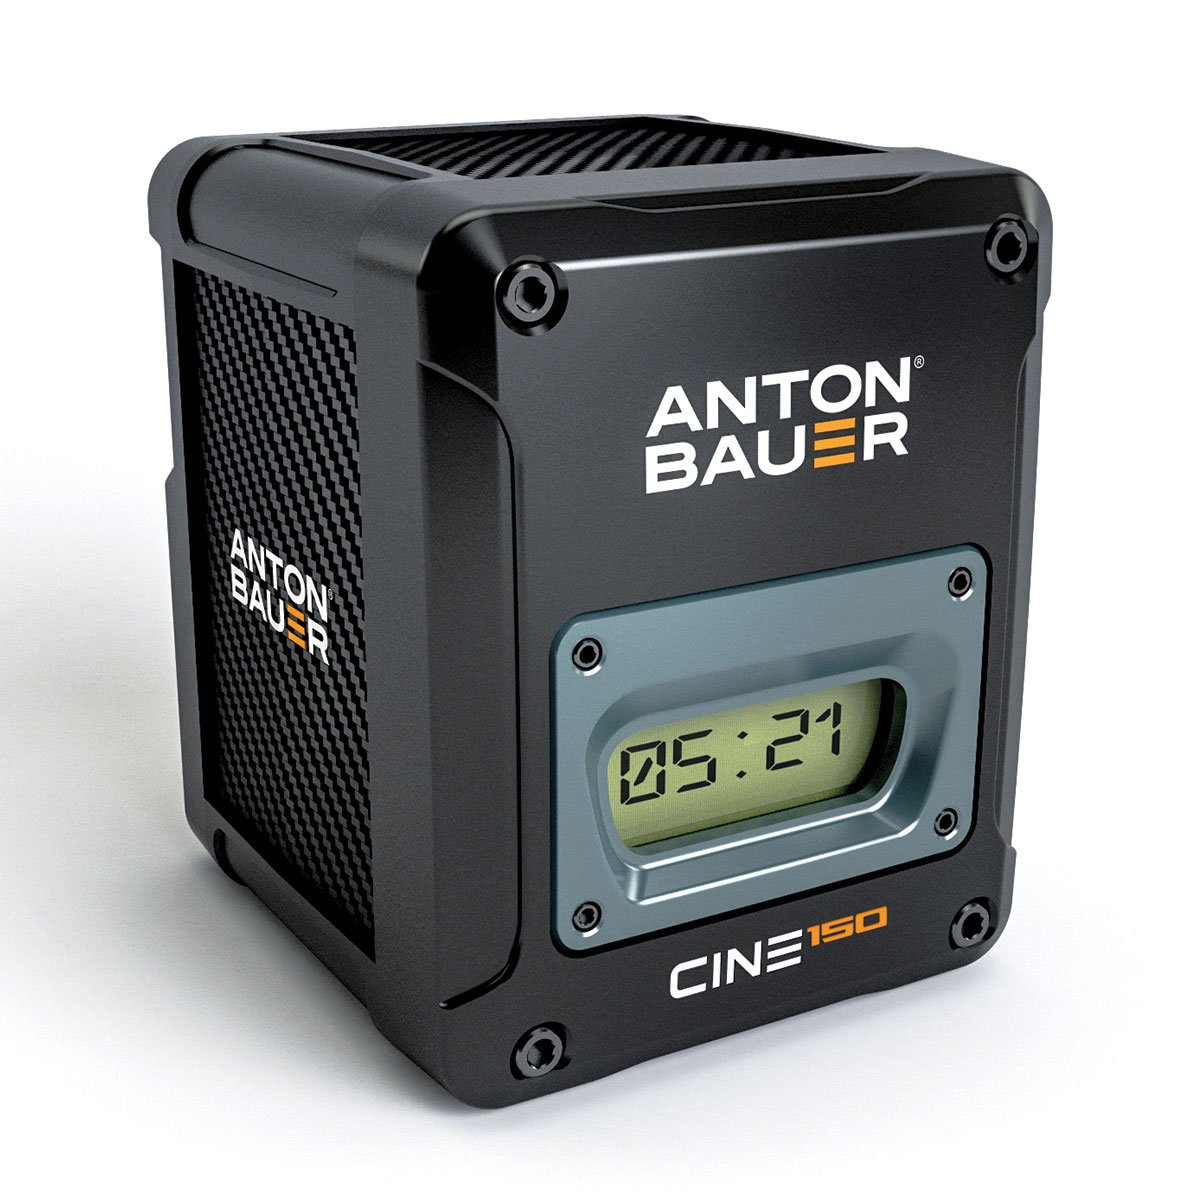 Anton Bauer CINE 150 VM Lithium-Ion V-Mount Battery 8675-0107